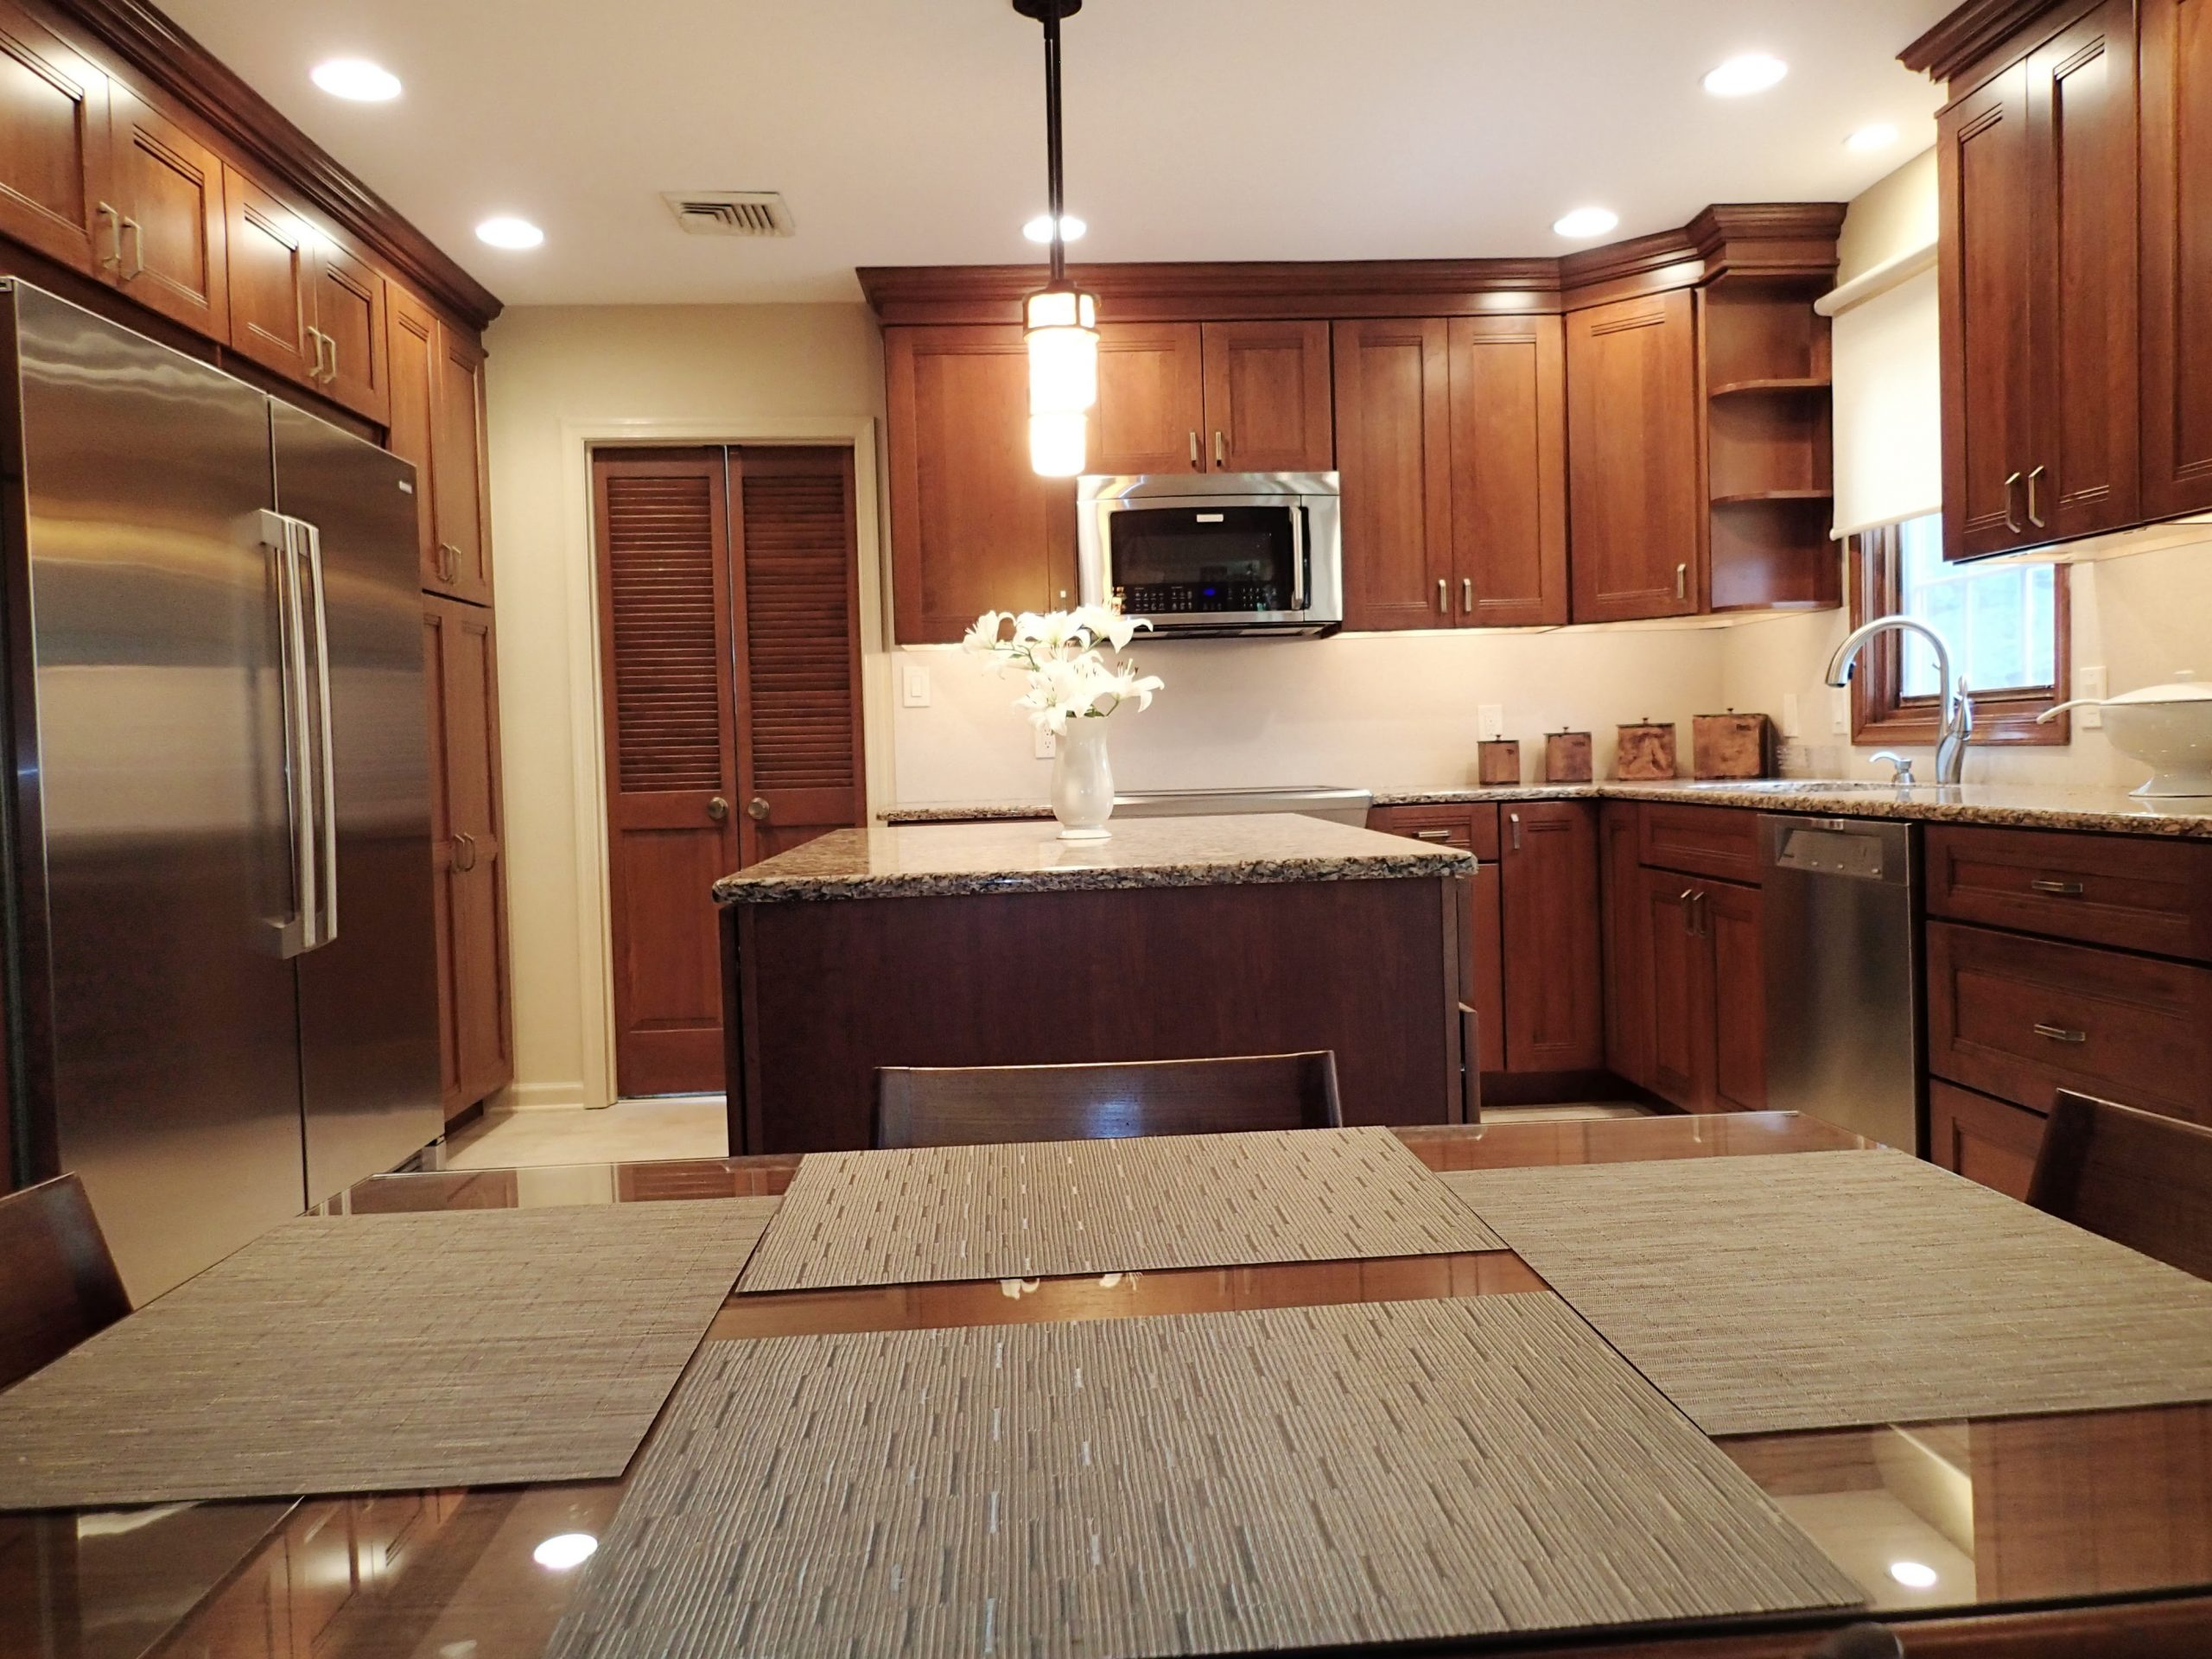 Kitchen Renovation Remodeling Contractor